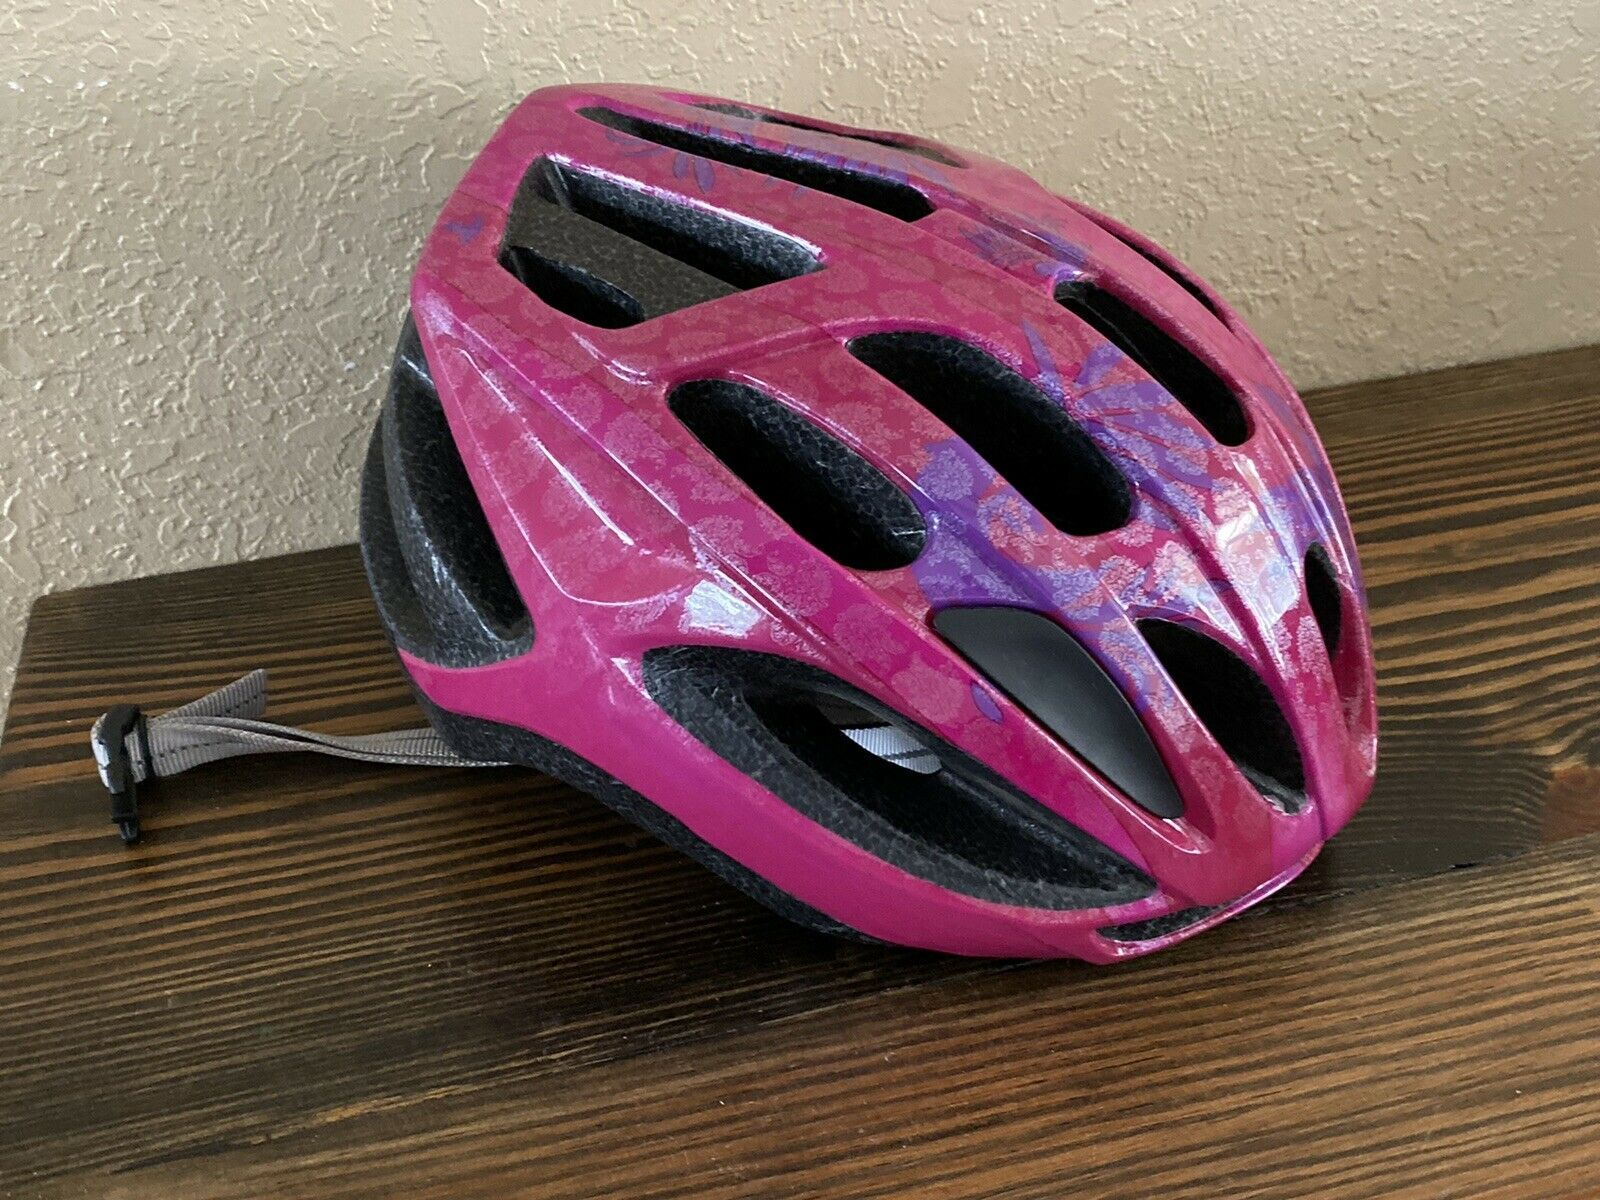 Details About Specialized Flash B90a Bike Cycling Helmet 50 58cm